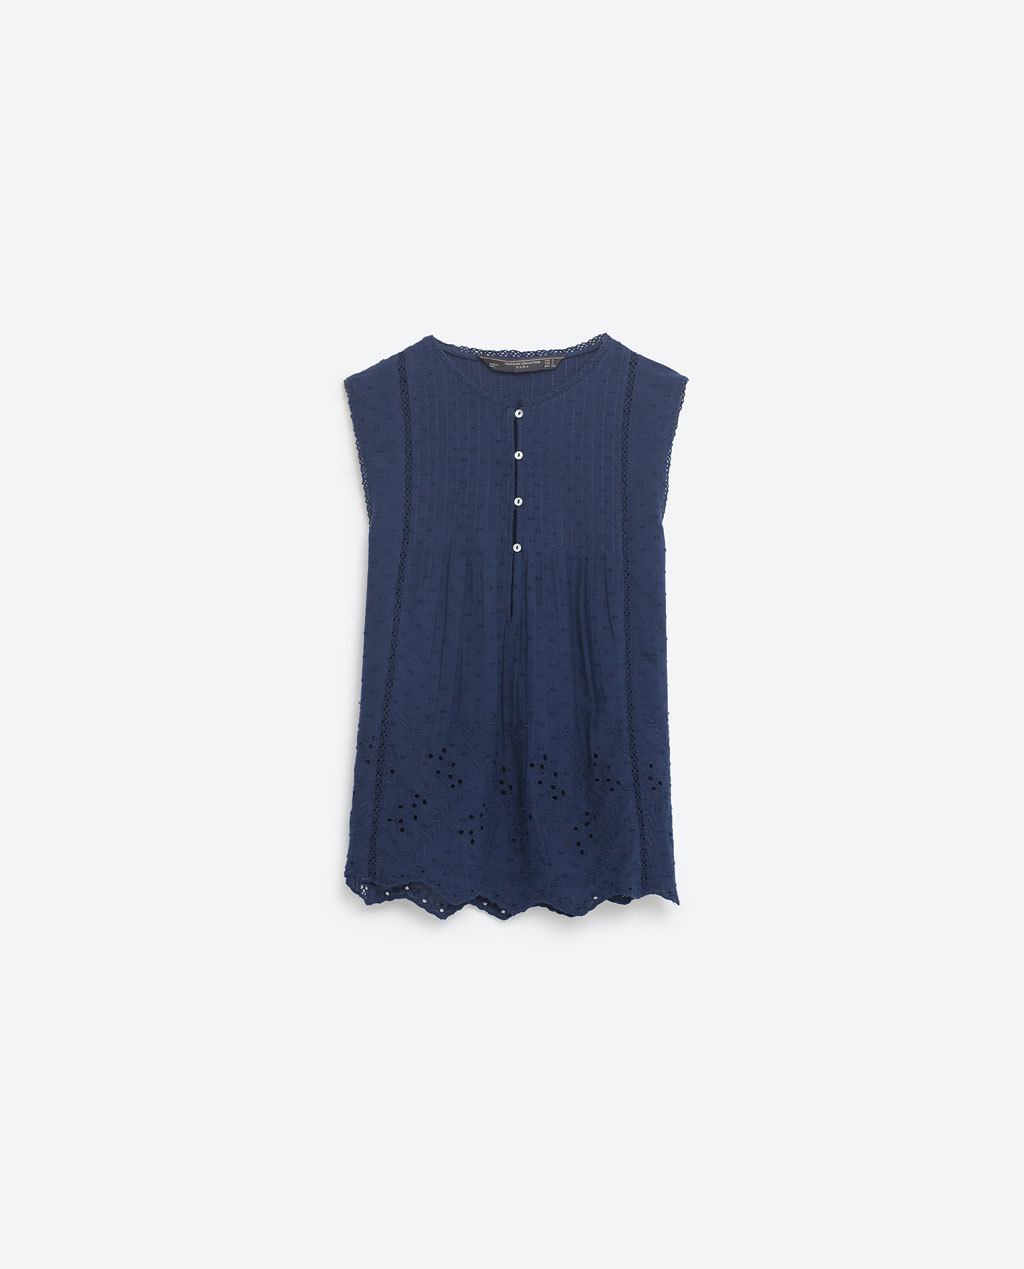 Embroidered Top - sleeve style: capped; pattern: plain; predominant colour: navy; occasions: casual; length: standard; style: top; fibres: cotton - 100%; fit: body skimming; neckline: crew; sleeve length: sleeveless; texture group: cotton feel fabrics; pattern type: fabric; season: s/s 2016; wardrobe: basic